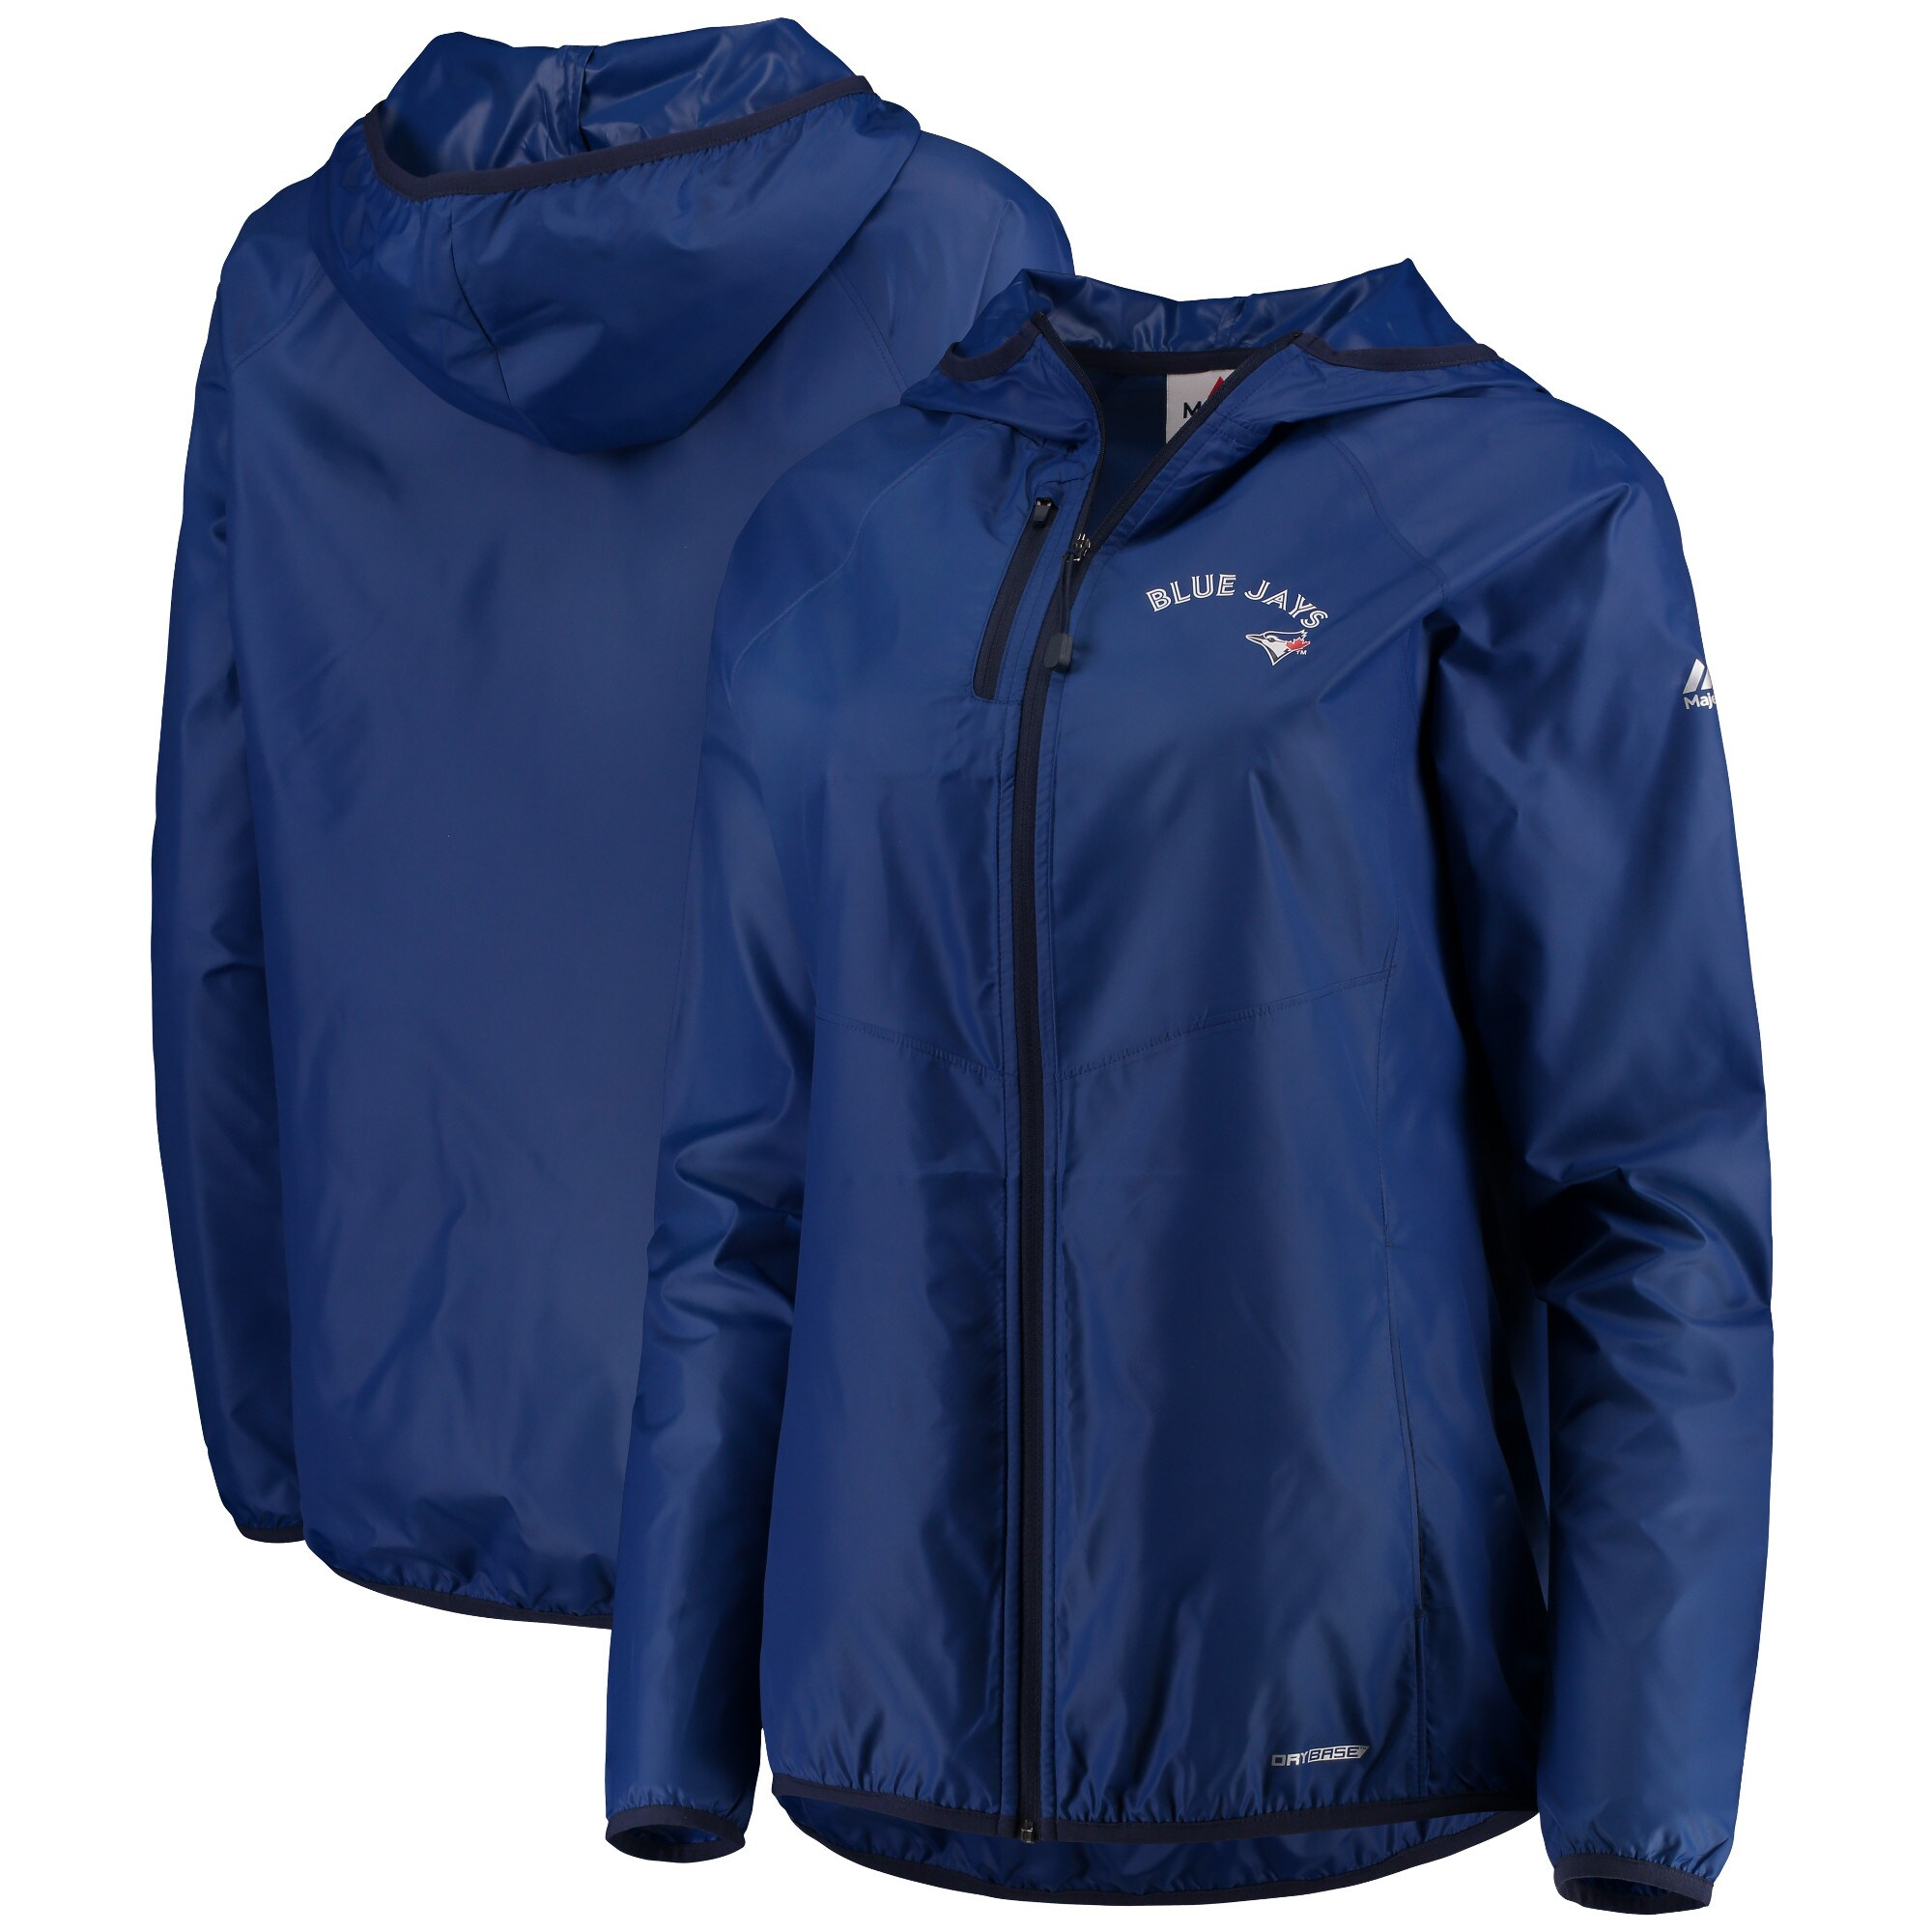 Toronto Blue Jays Majestic Women's Absolute Dominance Full-Zip Jacket - Royal